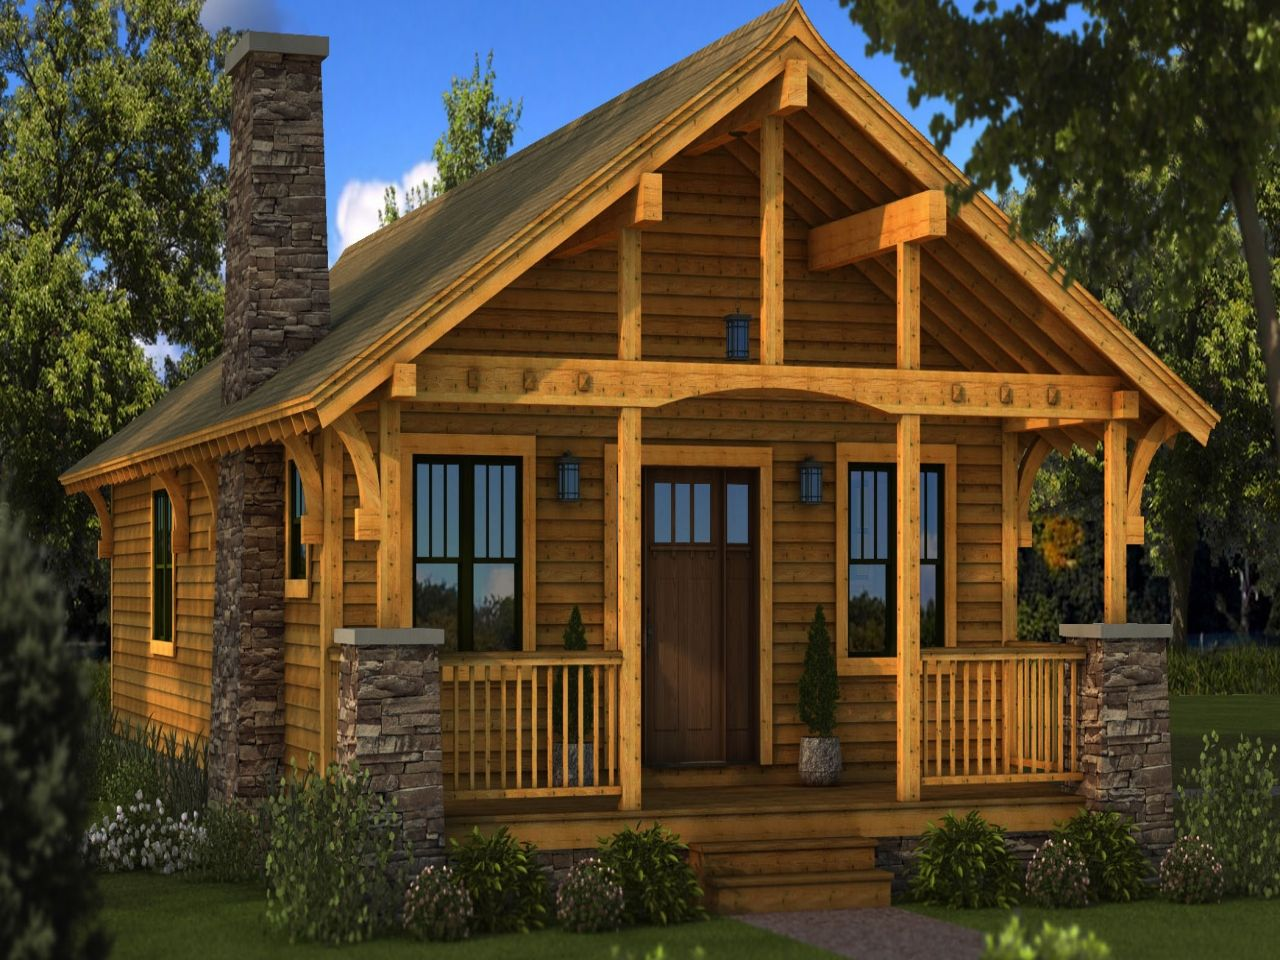 Small Log Cabin Kit Homes Small Log Cabin Floor Plans: Small Log Cabin Homes Plans, One Story Cabin Plans